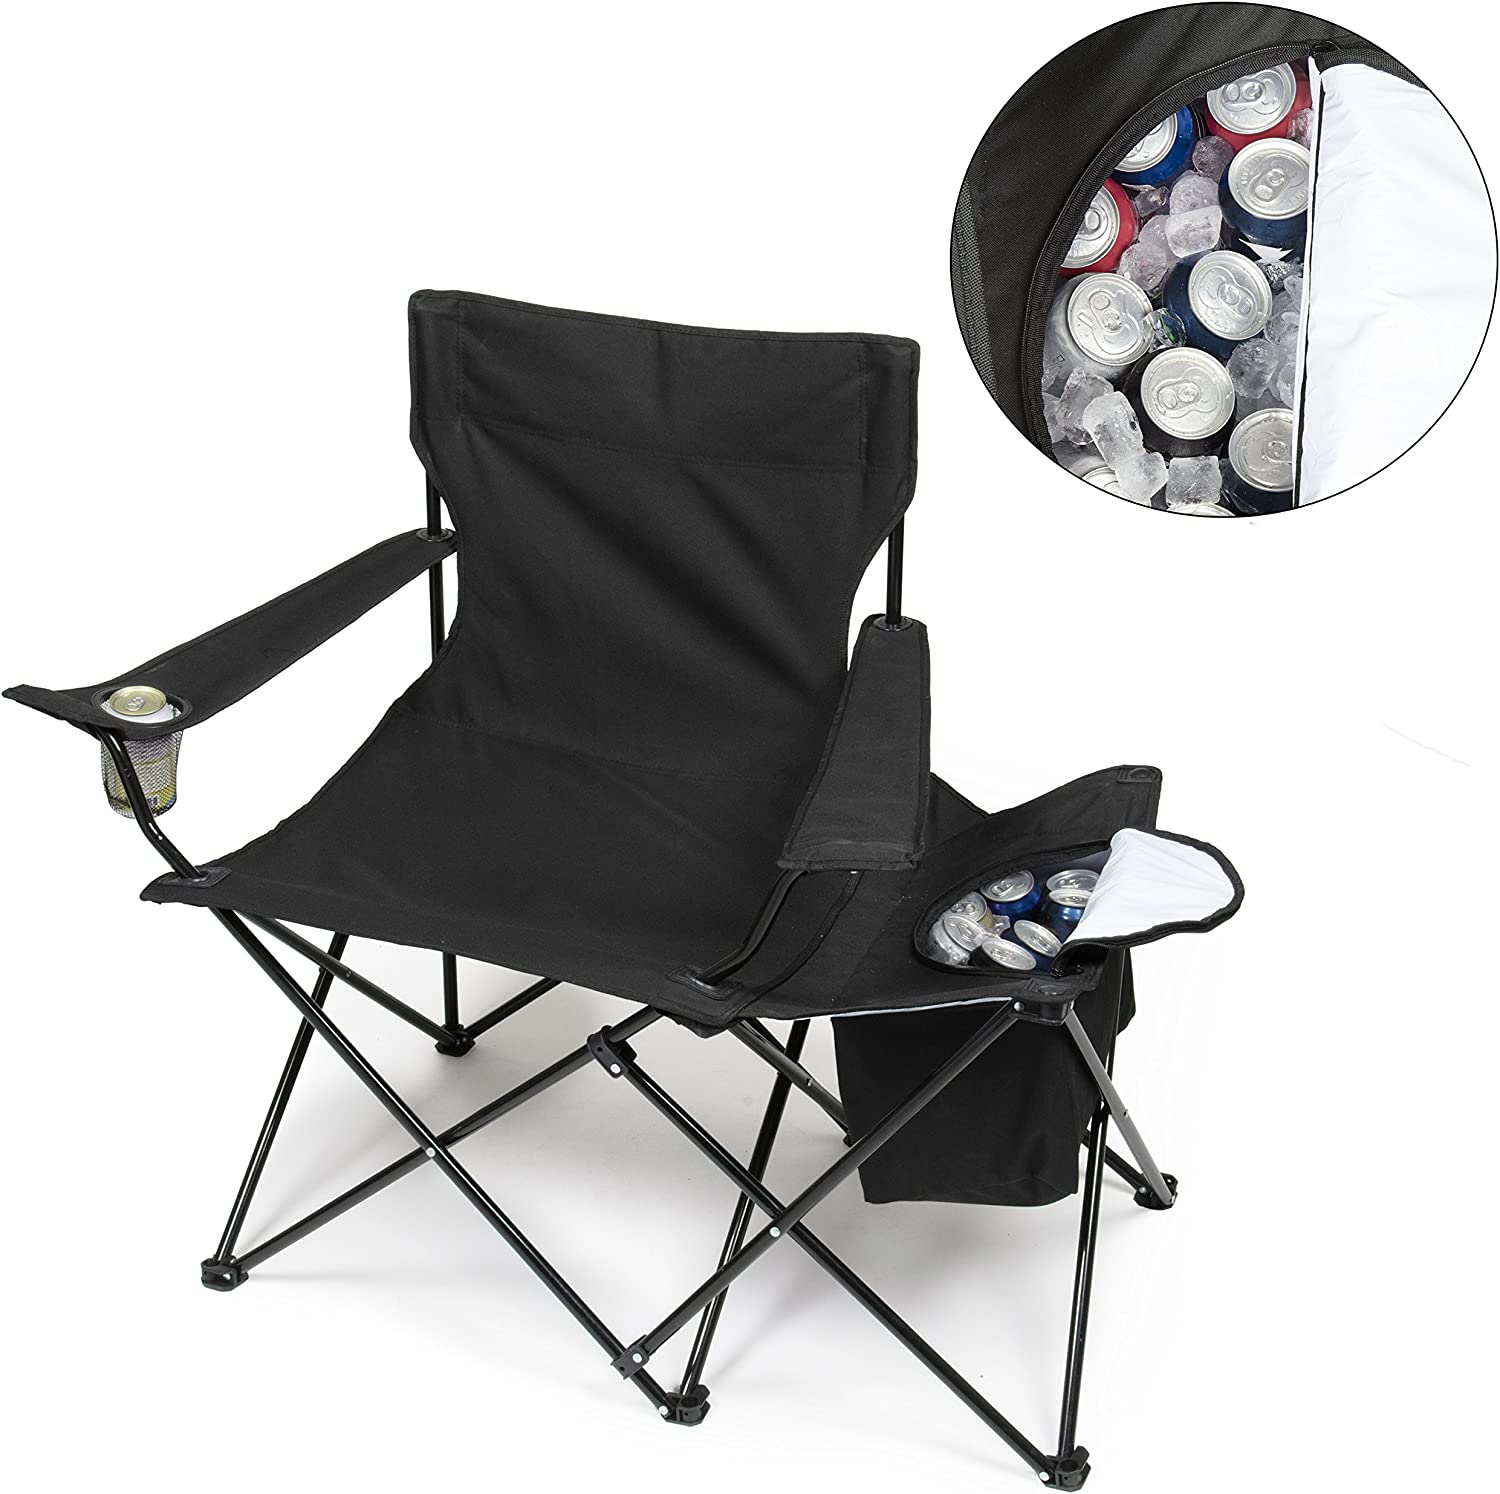 Tailgating Chair w Insulated Cooler- XXL Size Collapsible Folding Camping Chair w Cup Holder and Travel Bag